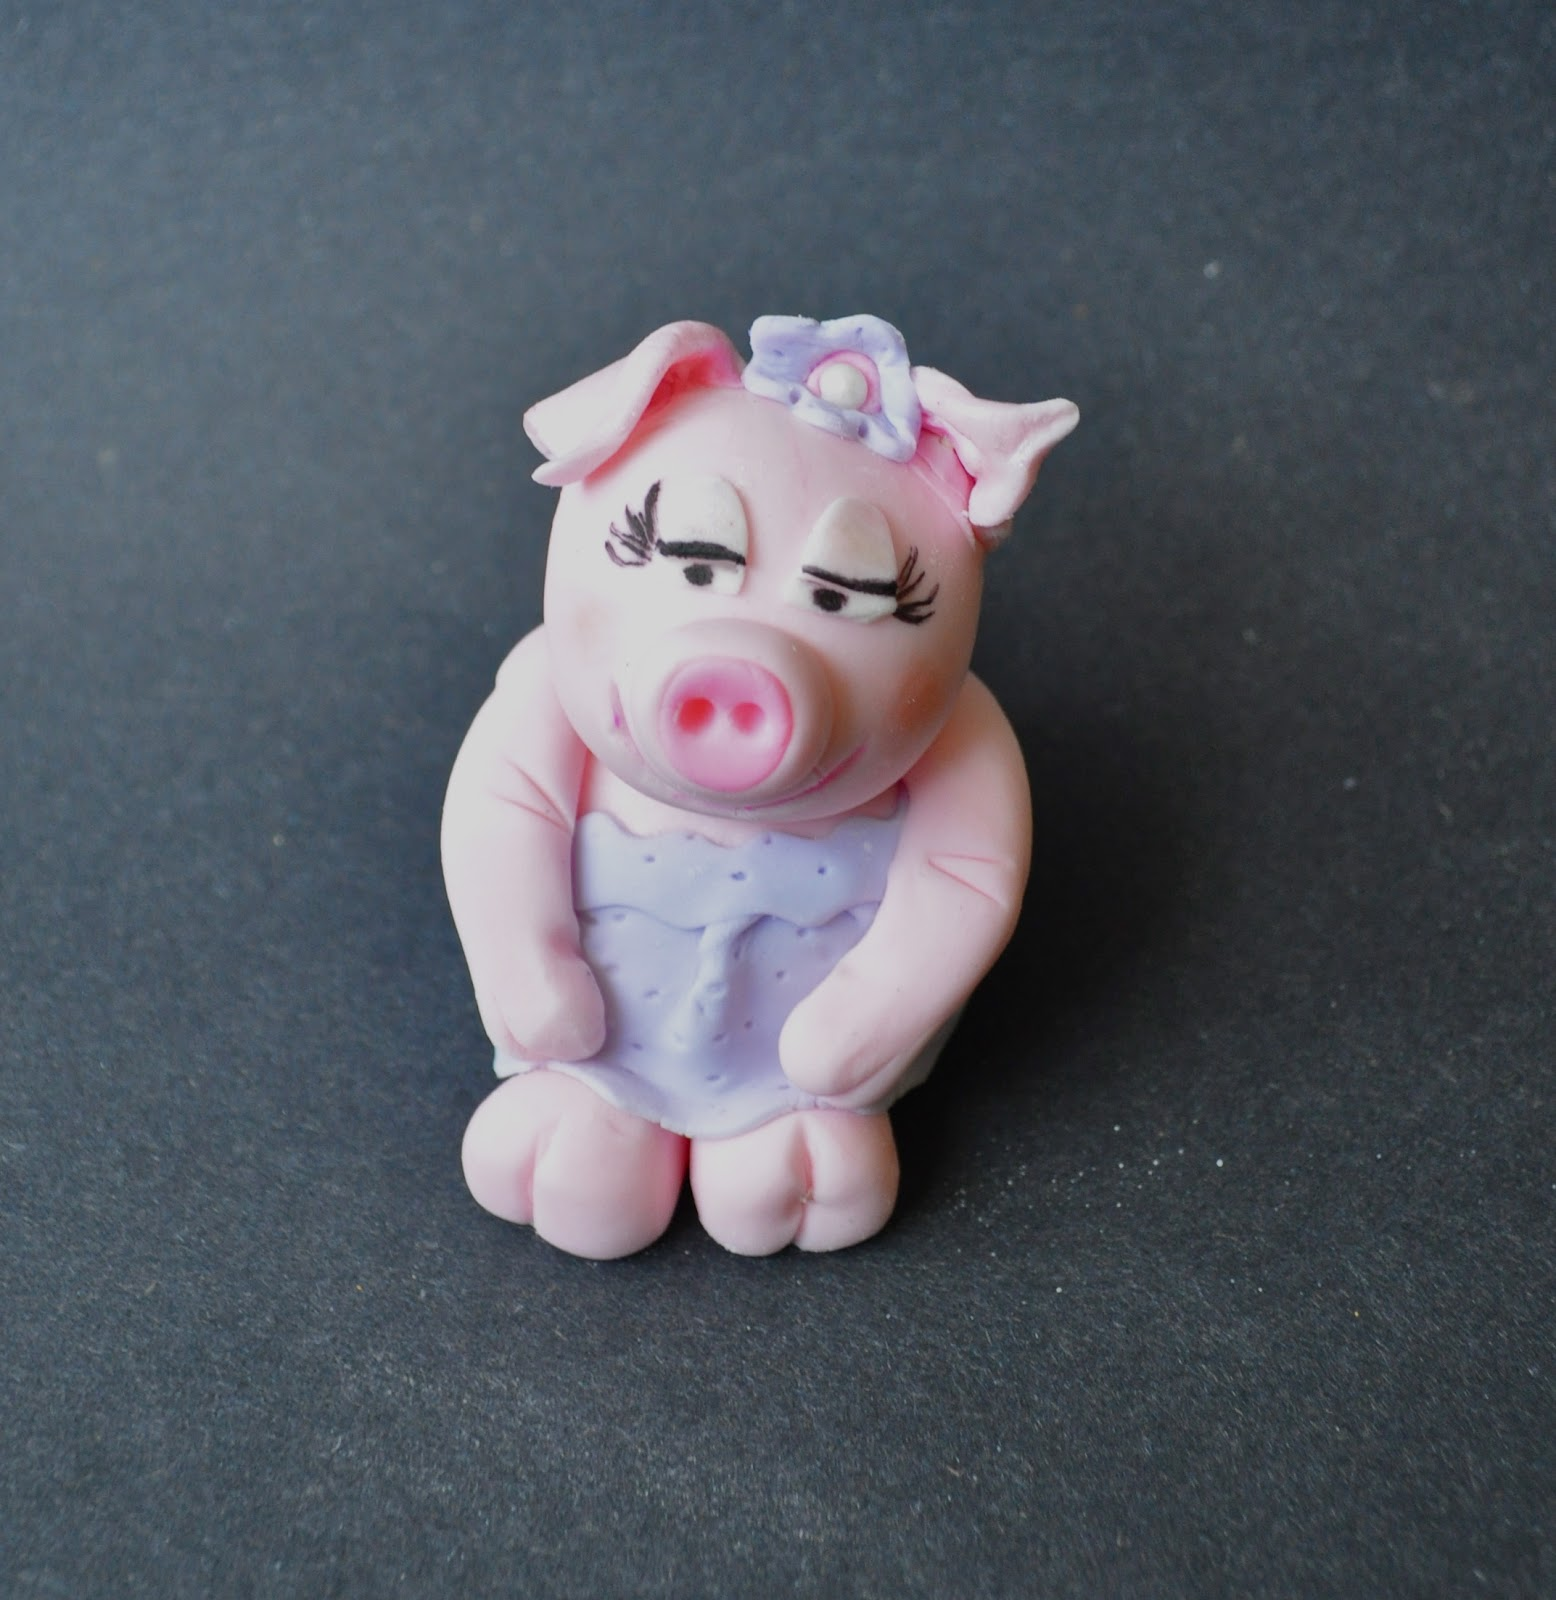 Cake Toppers On Fondant : Cakes by Setia: Fondant Pig Cake Toppers